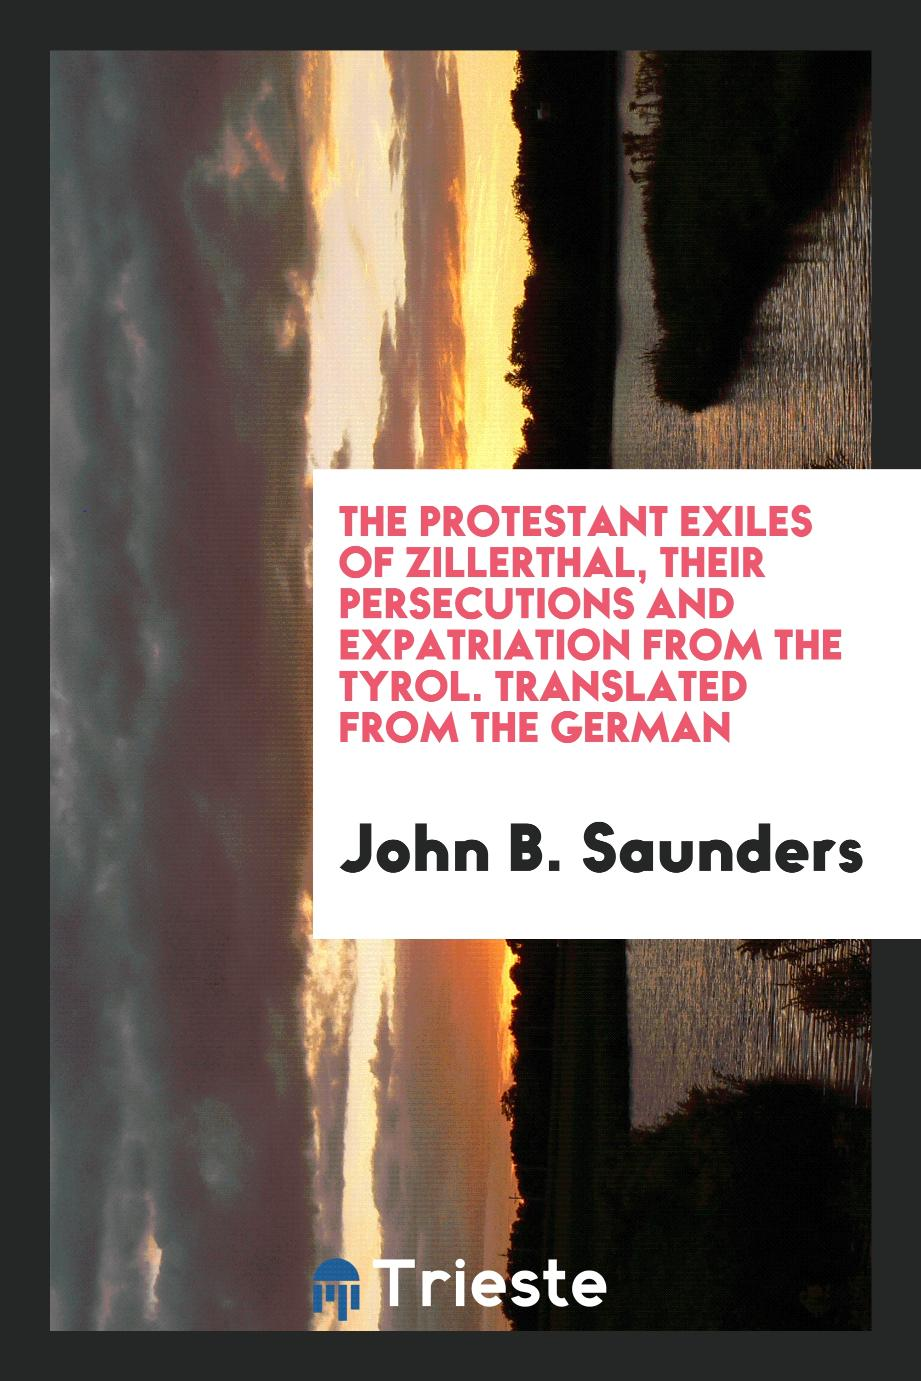 The Protestant Exiles of Zillerthal, Their Persecutions and Expatriation from the Tyrol. Translated from the German